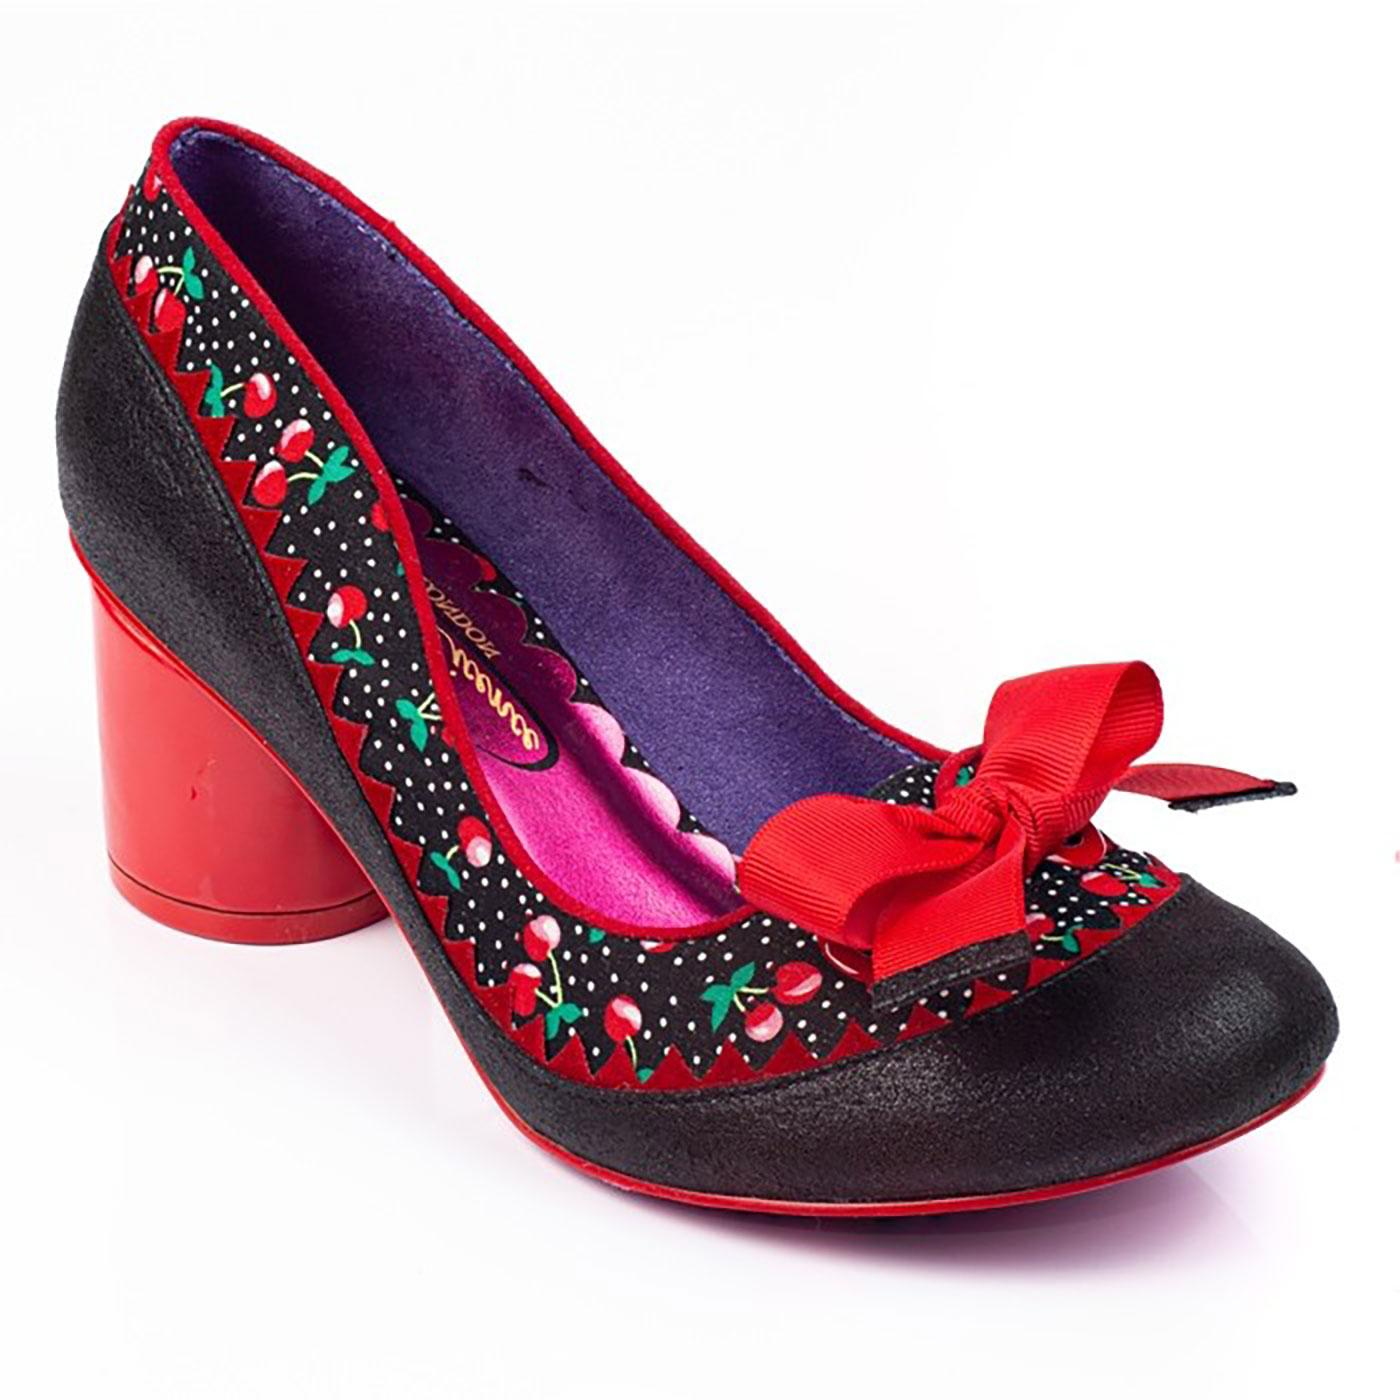 Mitzi IRREGULAR CHOICE Vintage Cherry Heels Black